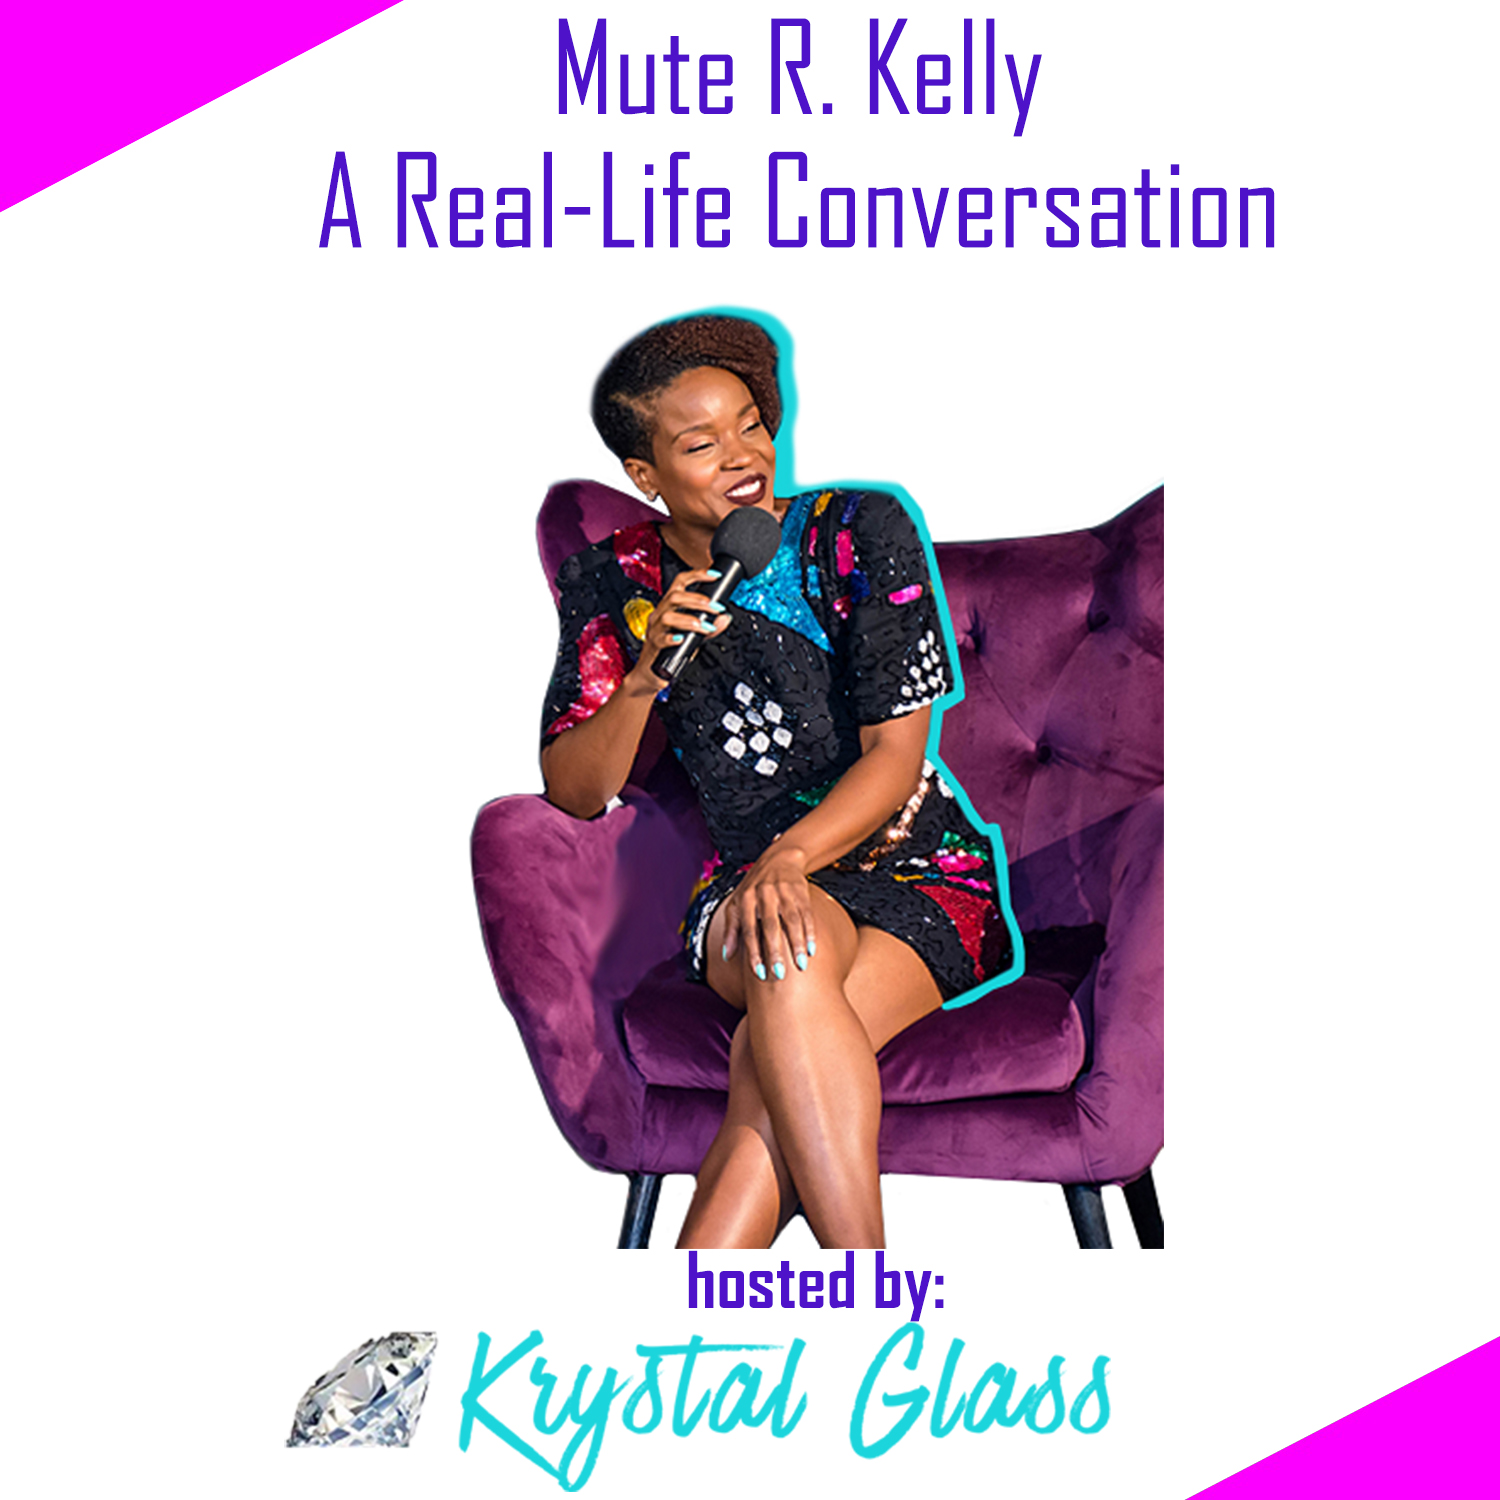 A Real-Life Conversation about Mute R. Kelly - Tune in to hear a balanced conversation between men and women as they share their thoughts on sexual assault, mental health, misogyny, and whether or not to mute R. Kelly, and much more…